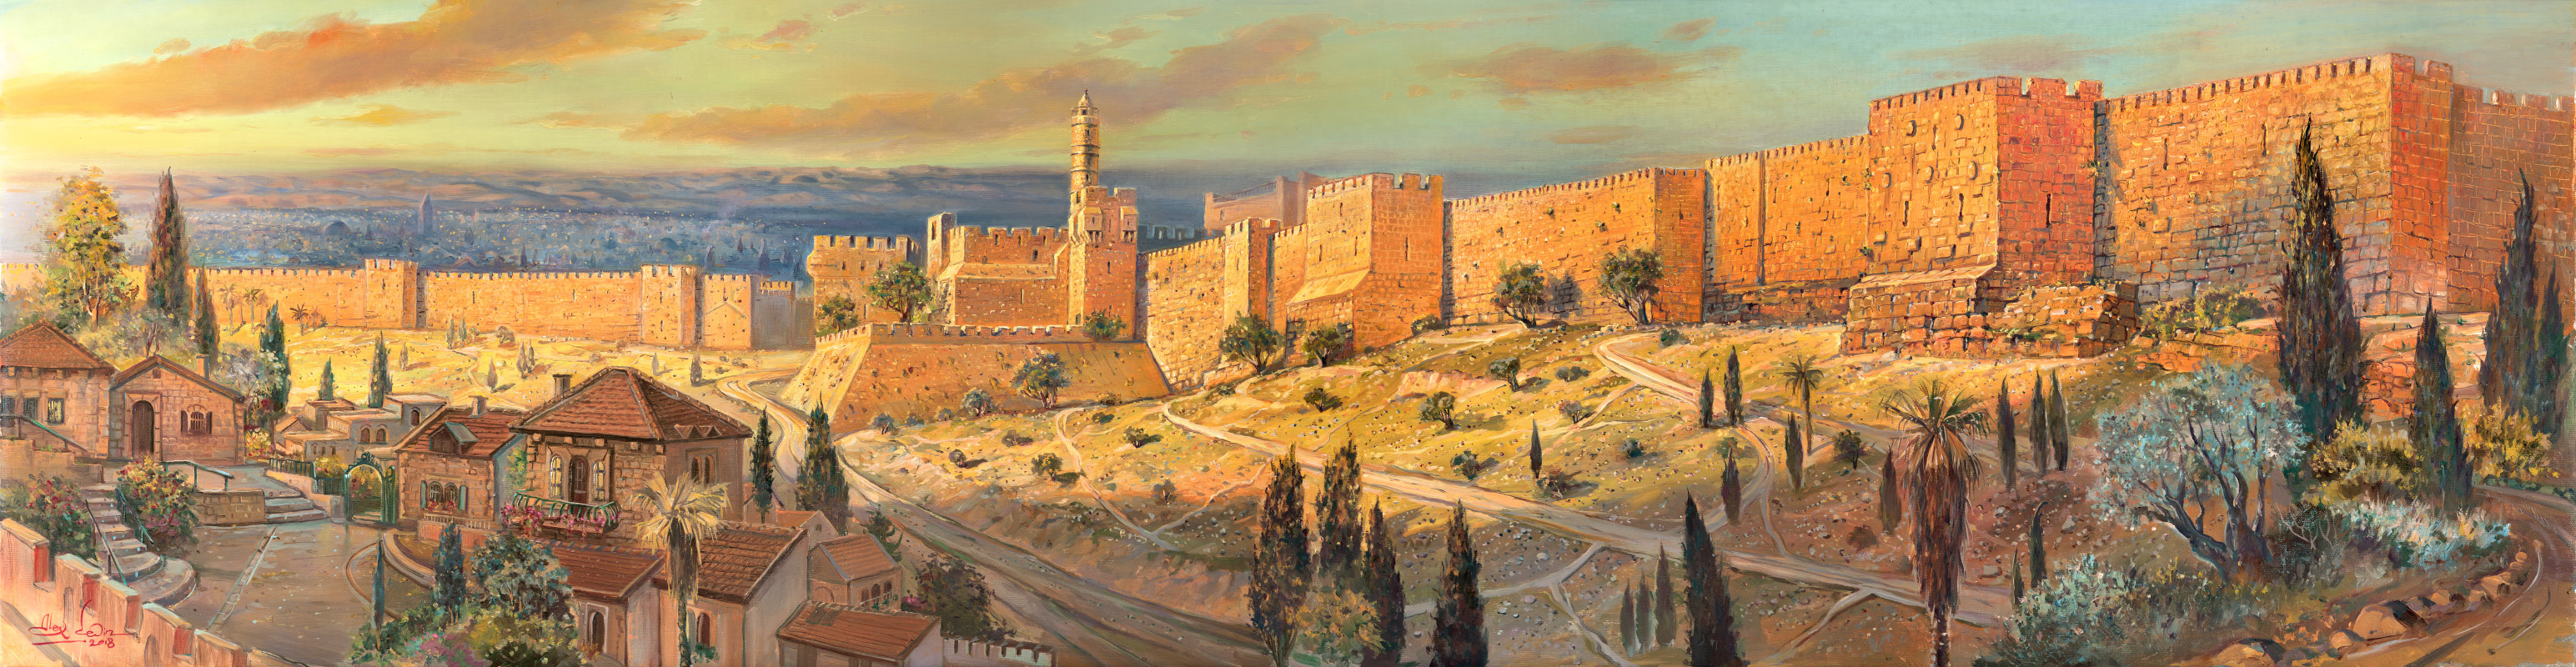 The Walls of Jerusalem, Painting by Alex Levin